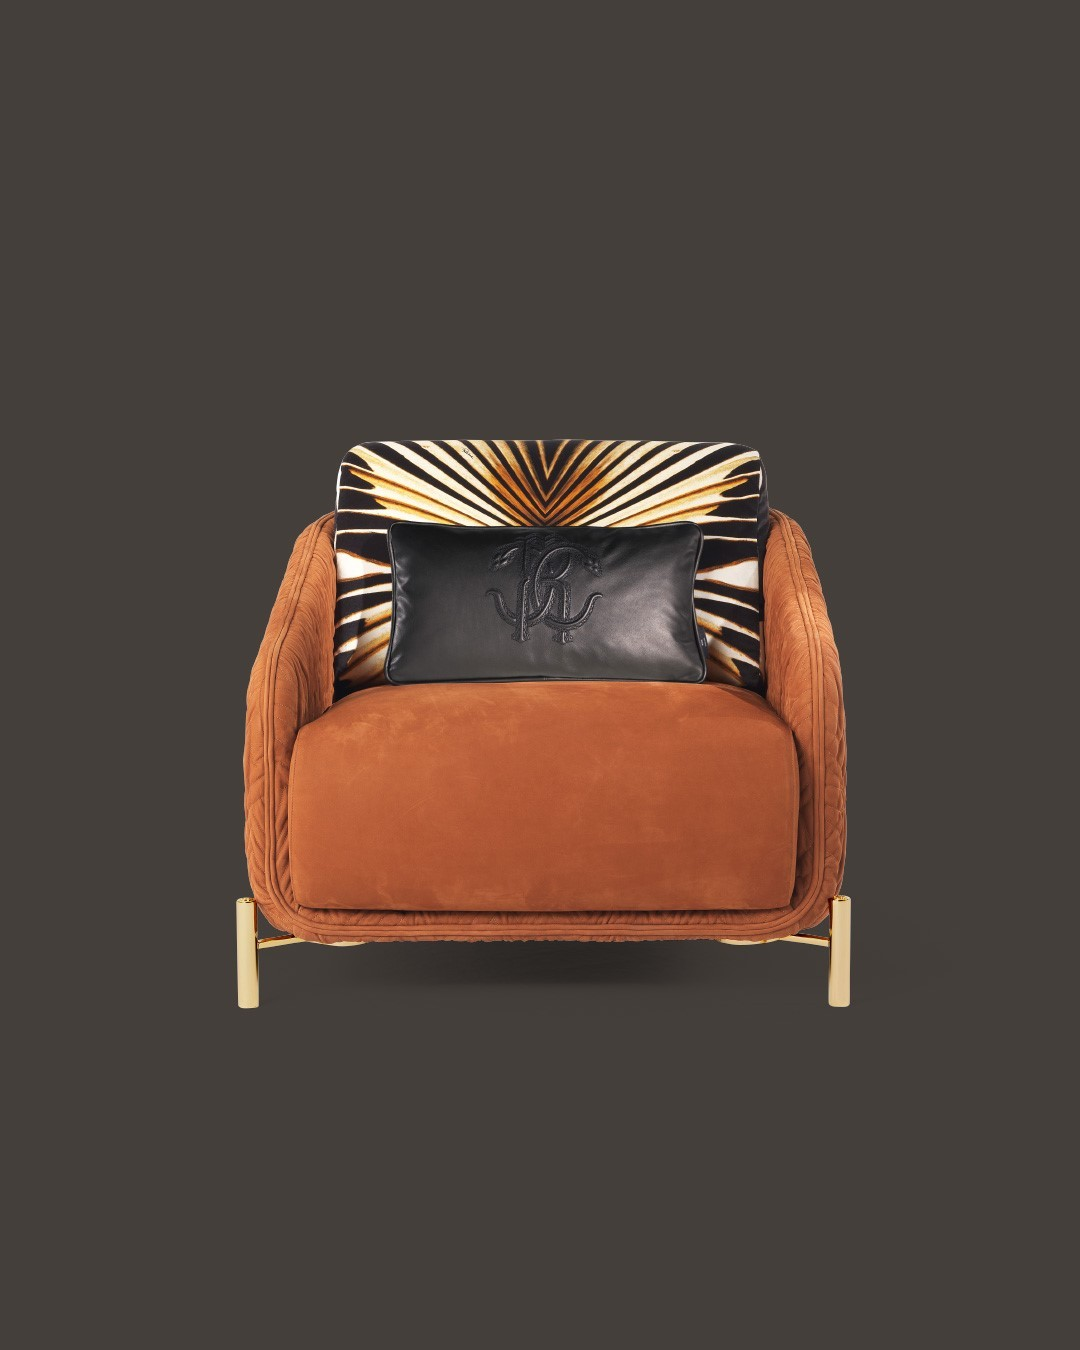 Upholstered in nubuck, in an orange shad...